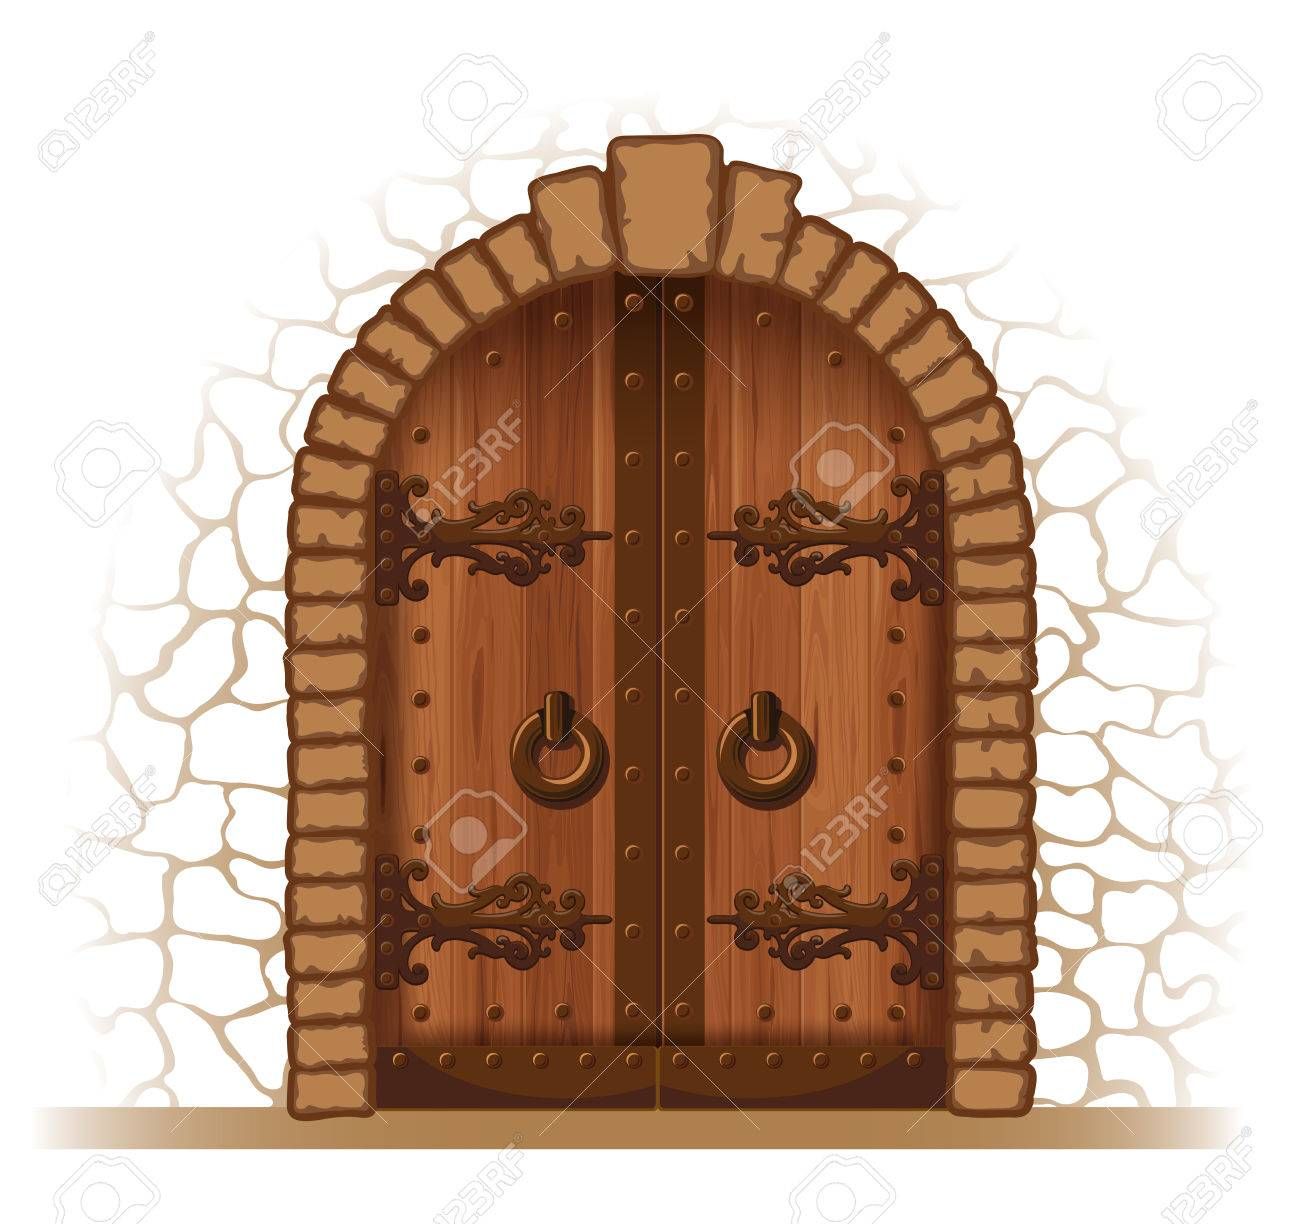 Arched medieval wooden door in a stone wall - 55910367